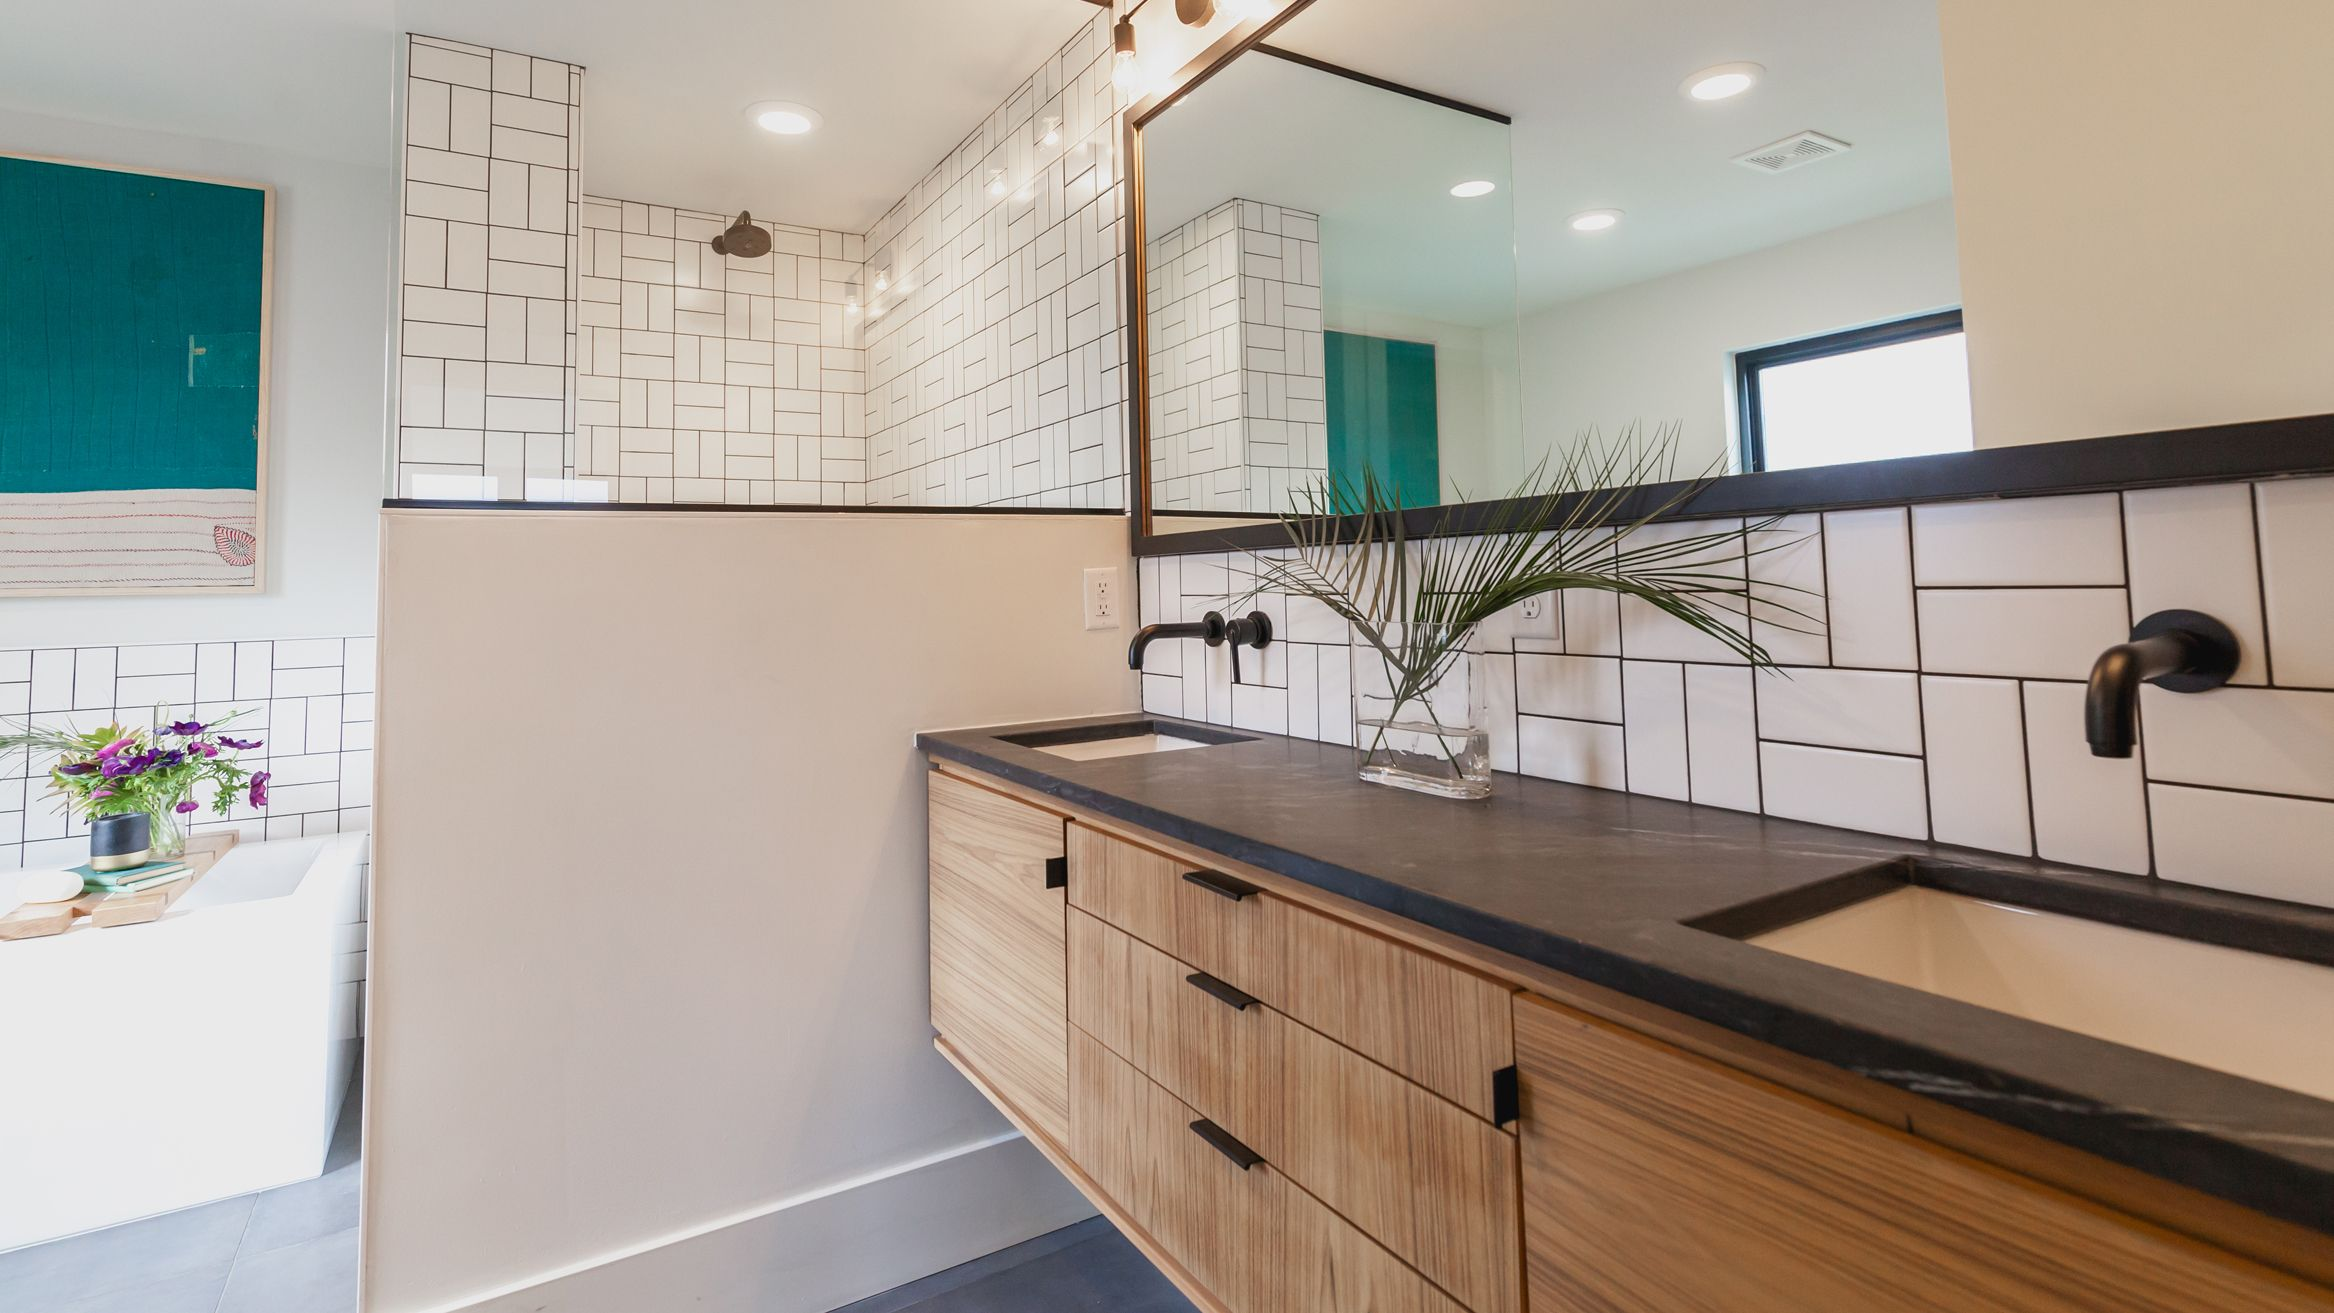 Timber And Love Design And Build Blog Boise Boys S01 E01 The View House Boise Boys Bathrooms Remodel Boise